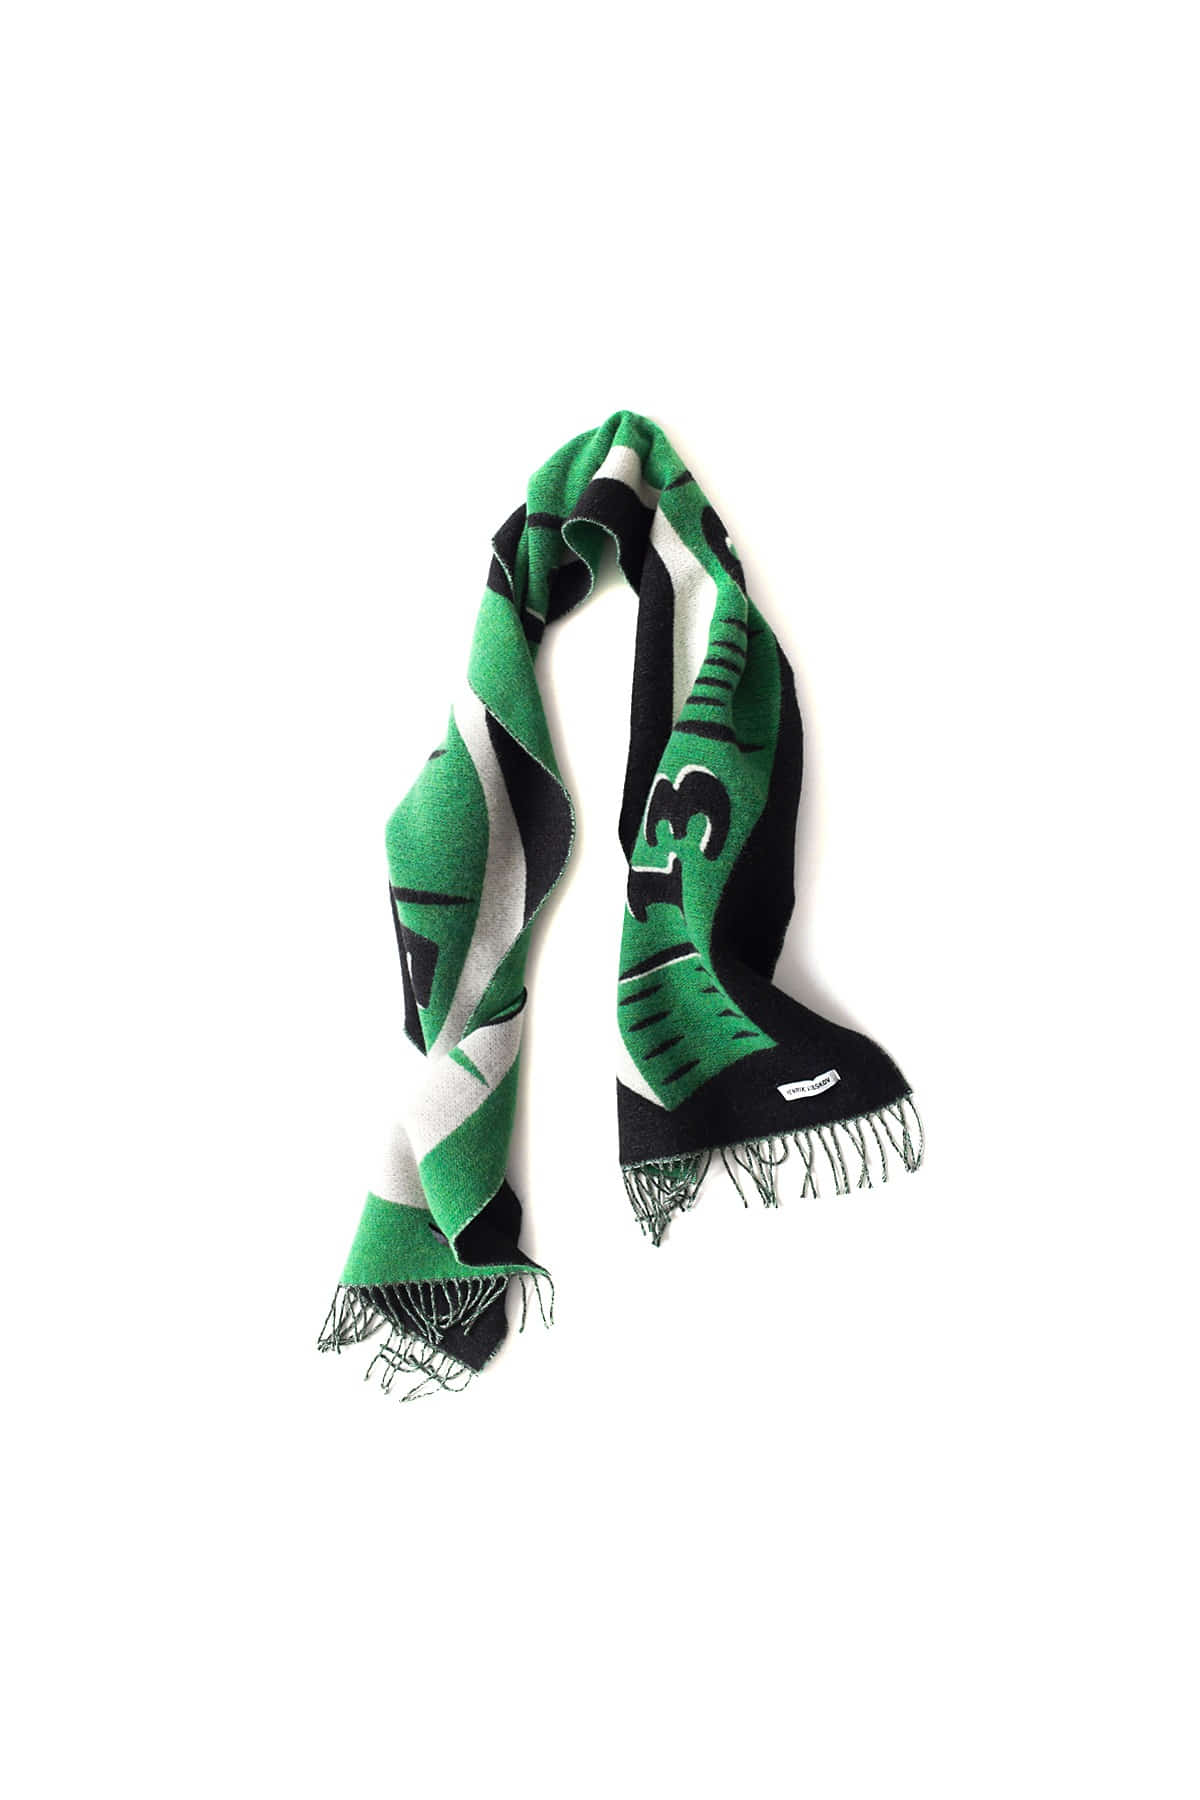 HENRIK VIBSKOV : Measuretape Scarf (Green)